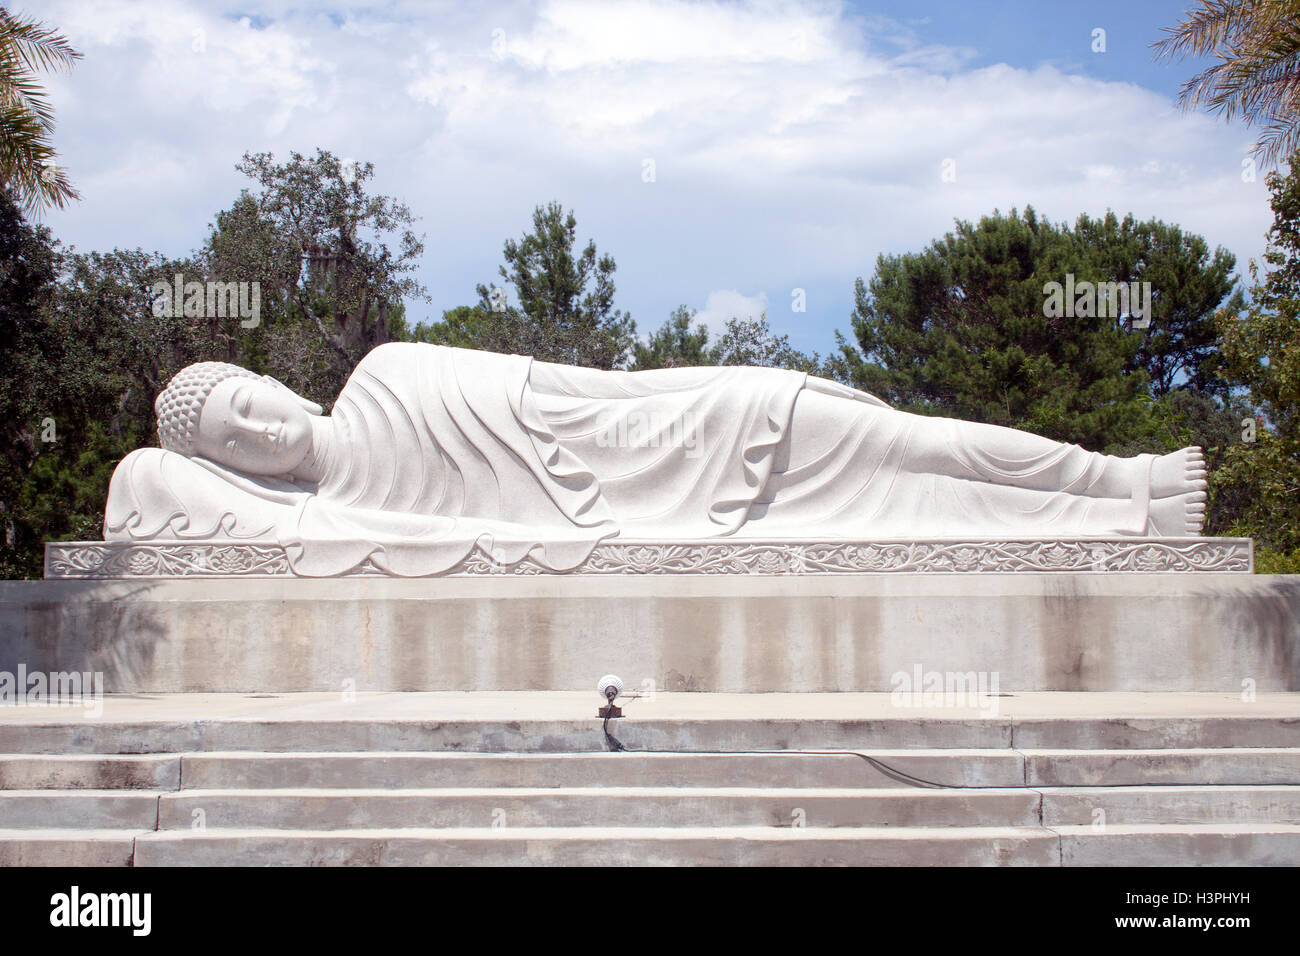 Giant Buddhas in Mims Florida - Stock Image